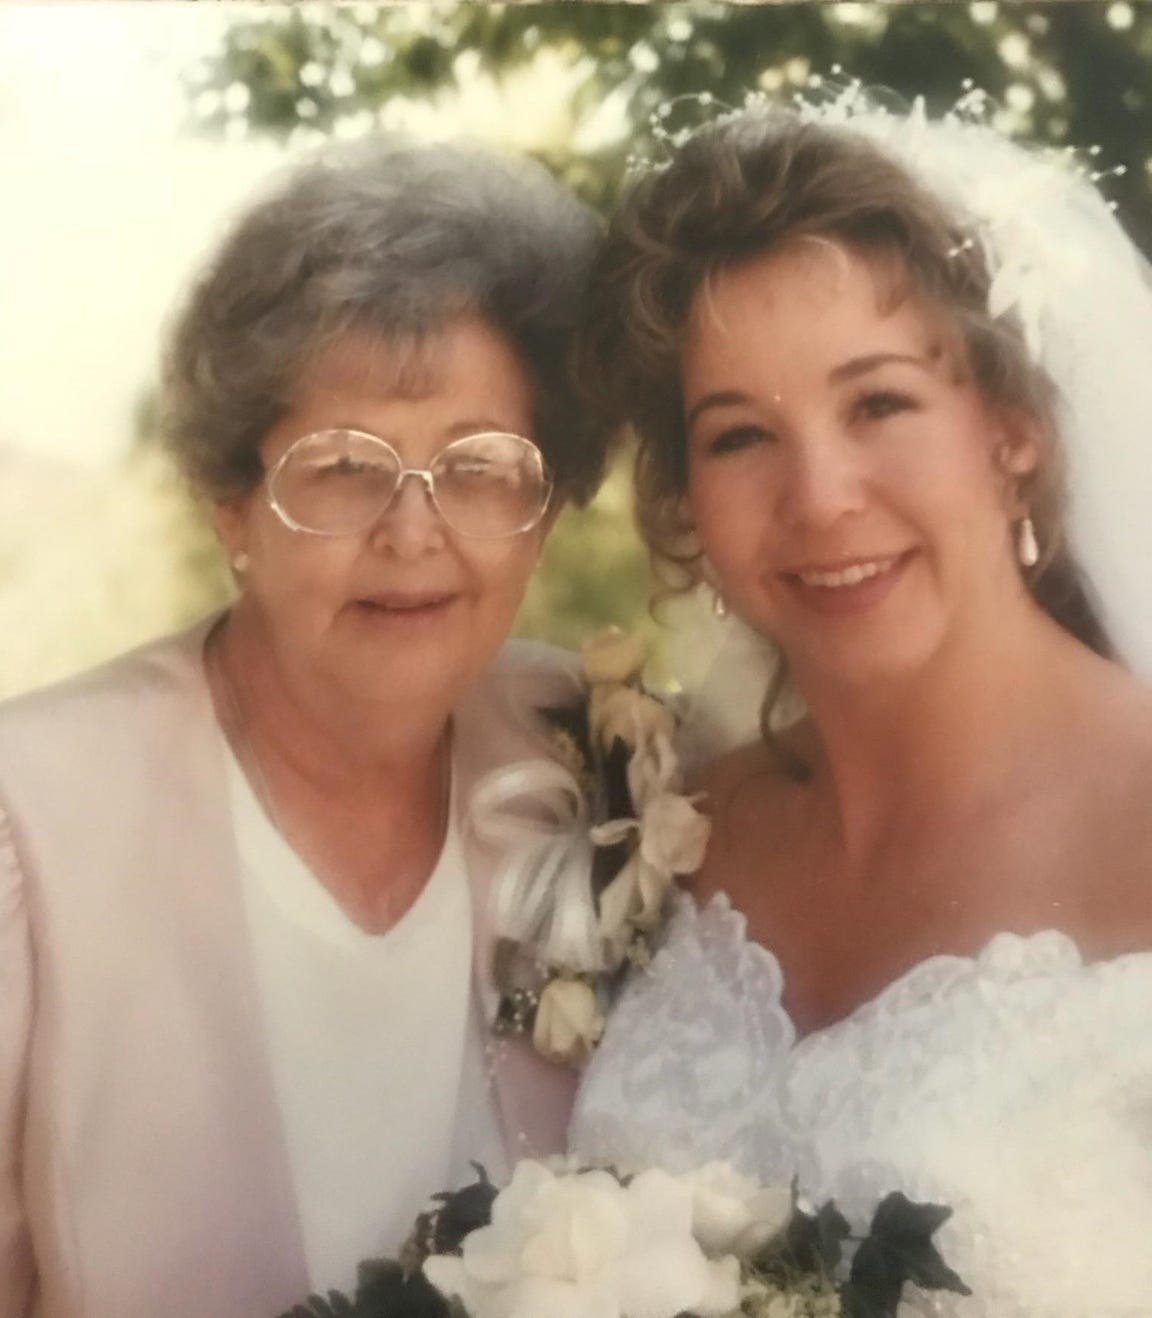 Nelda Brown, left, and her daughter, Wendee Lowe, are seen at Lowe's wedding.